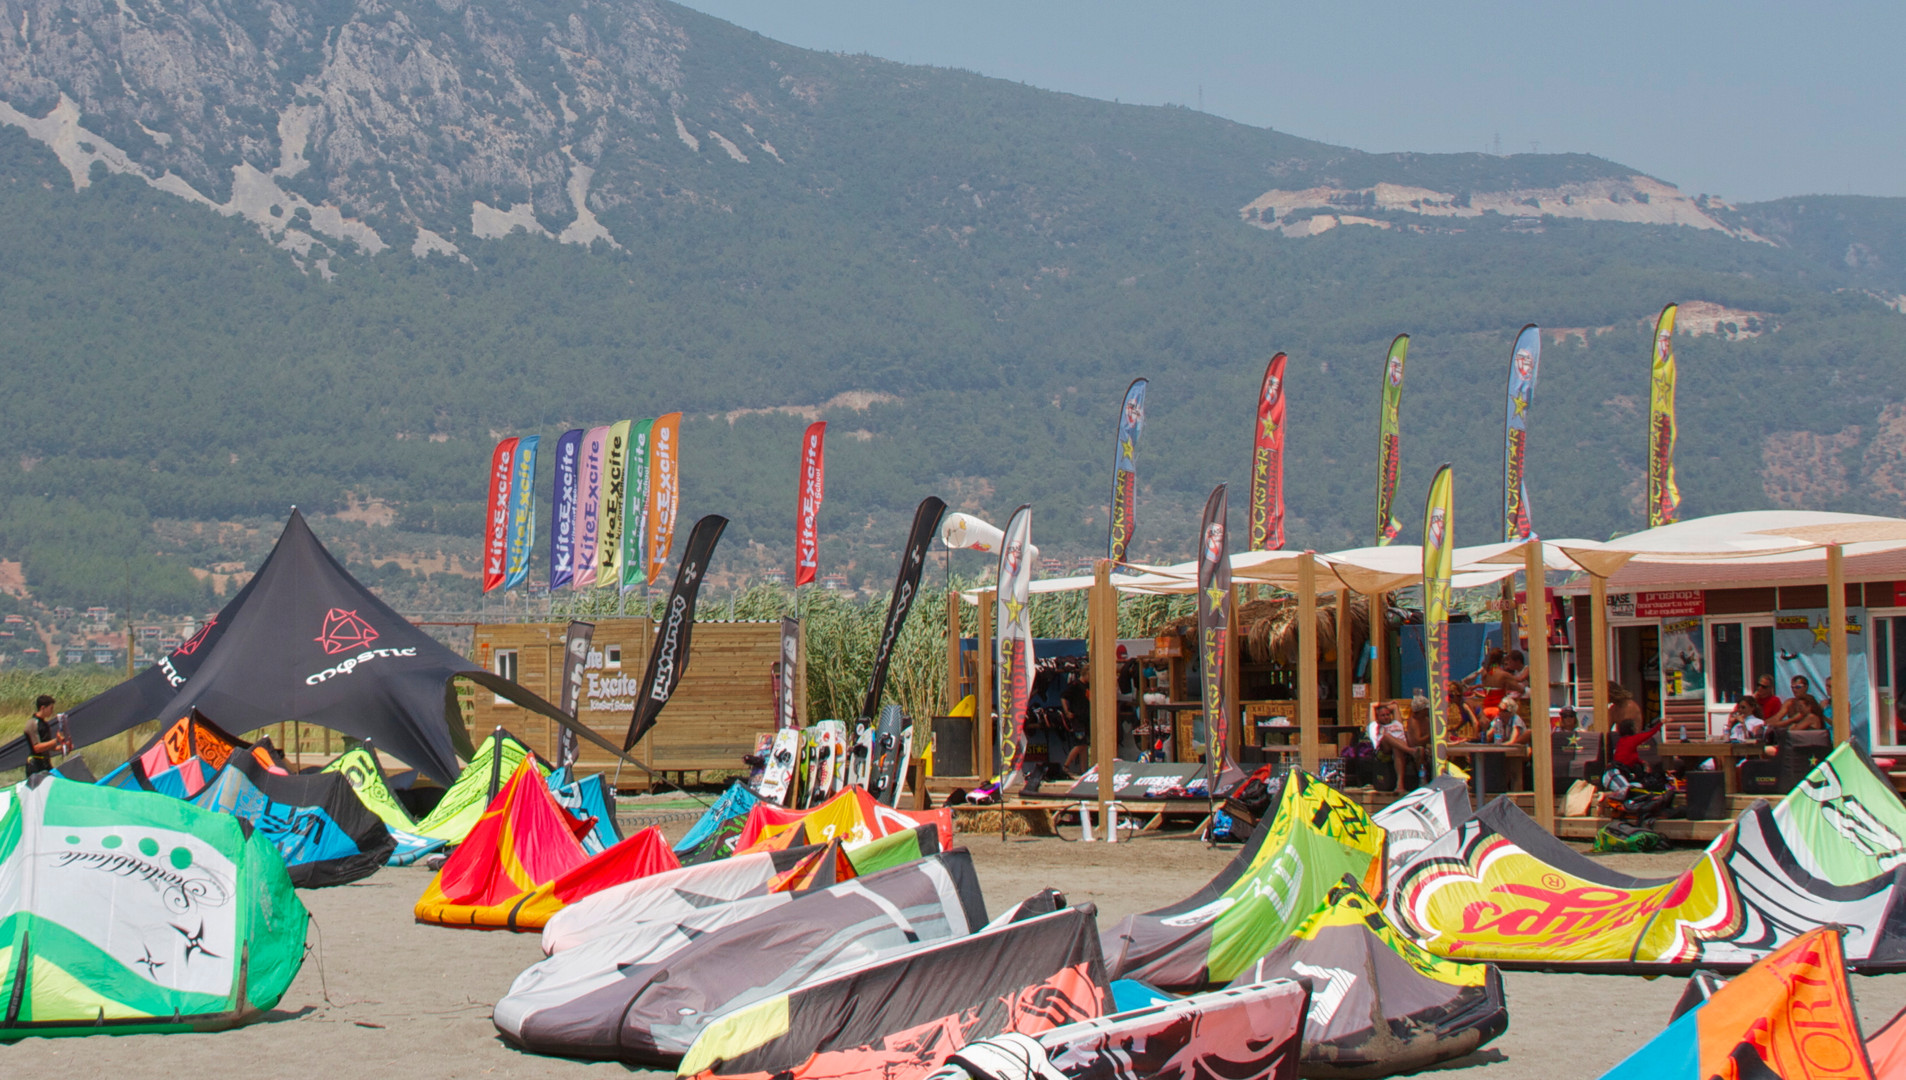 Kiteboard_School_2014.jpg